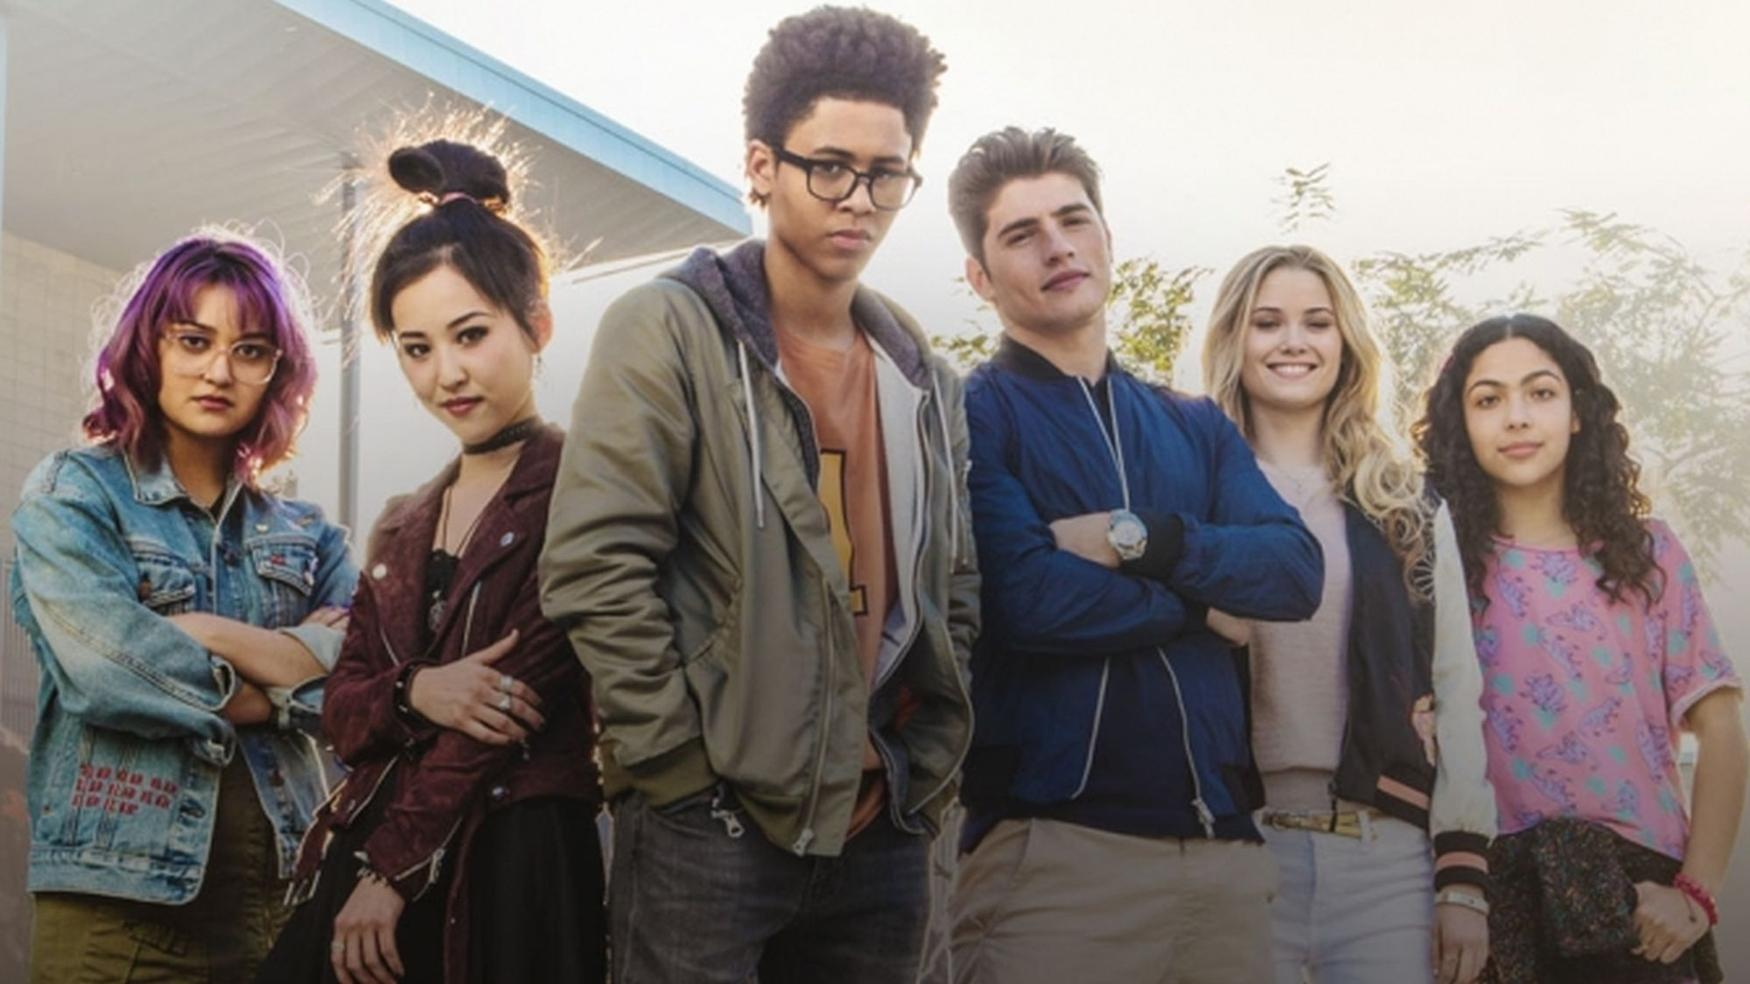 New 'Marvel's Runaways' Photos Spotlight The Cast Of Young Heroes